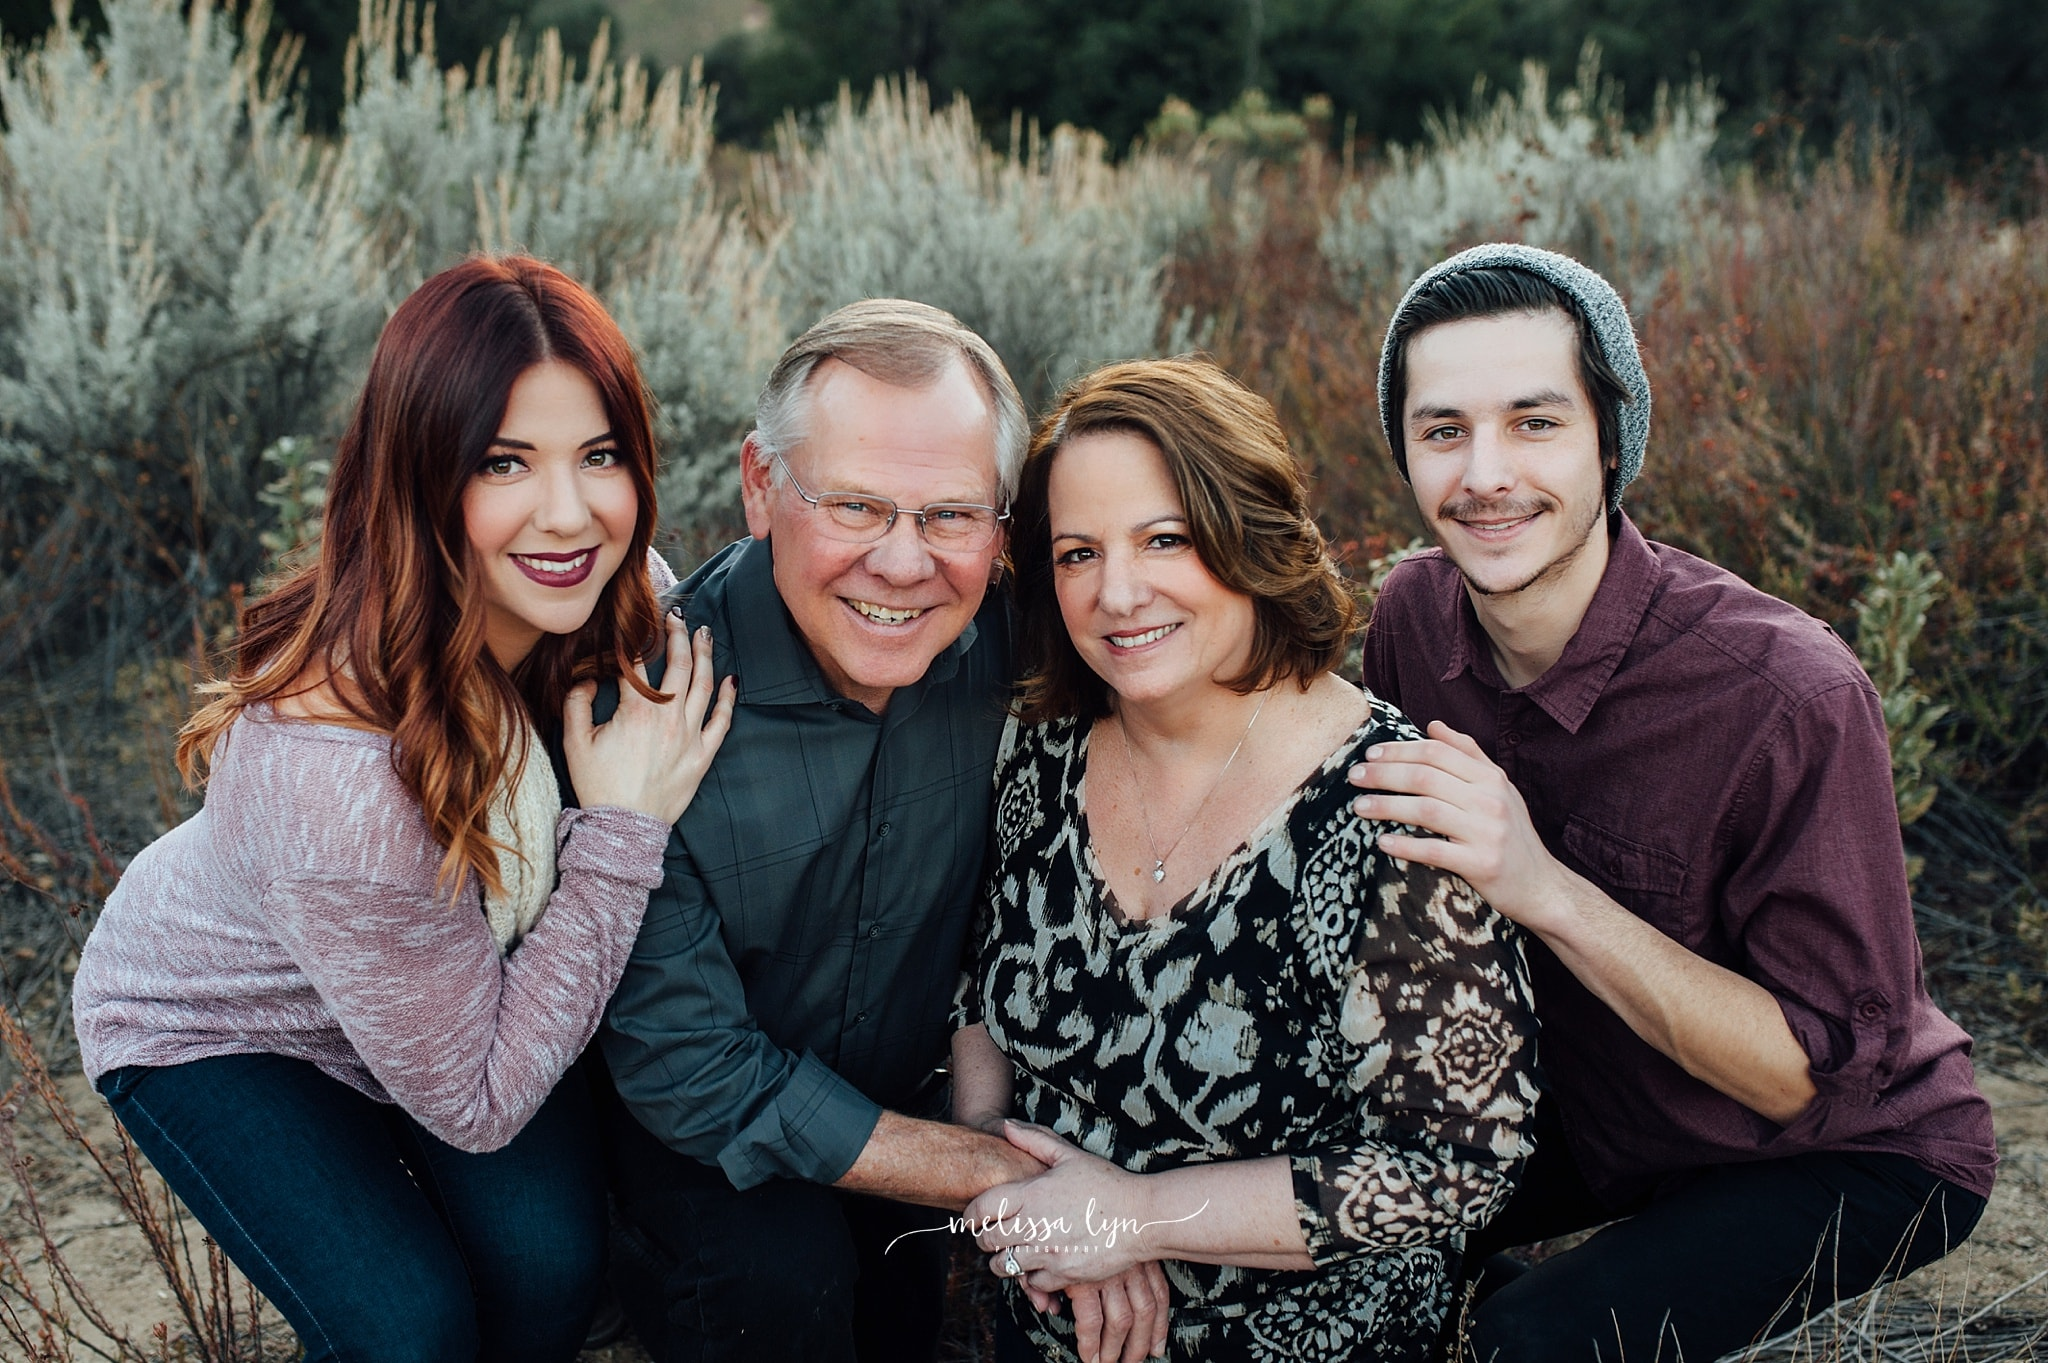 Melissa Lyn Photography - Temecula Family Photographer